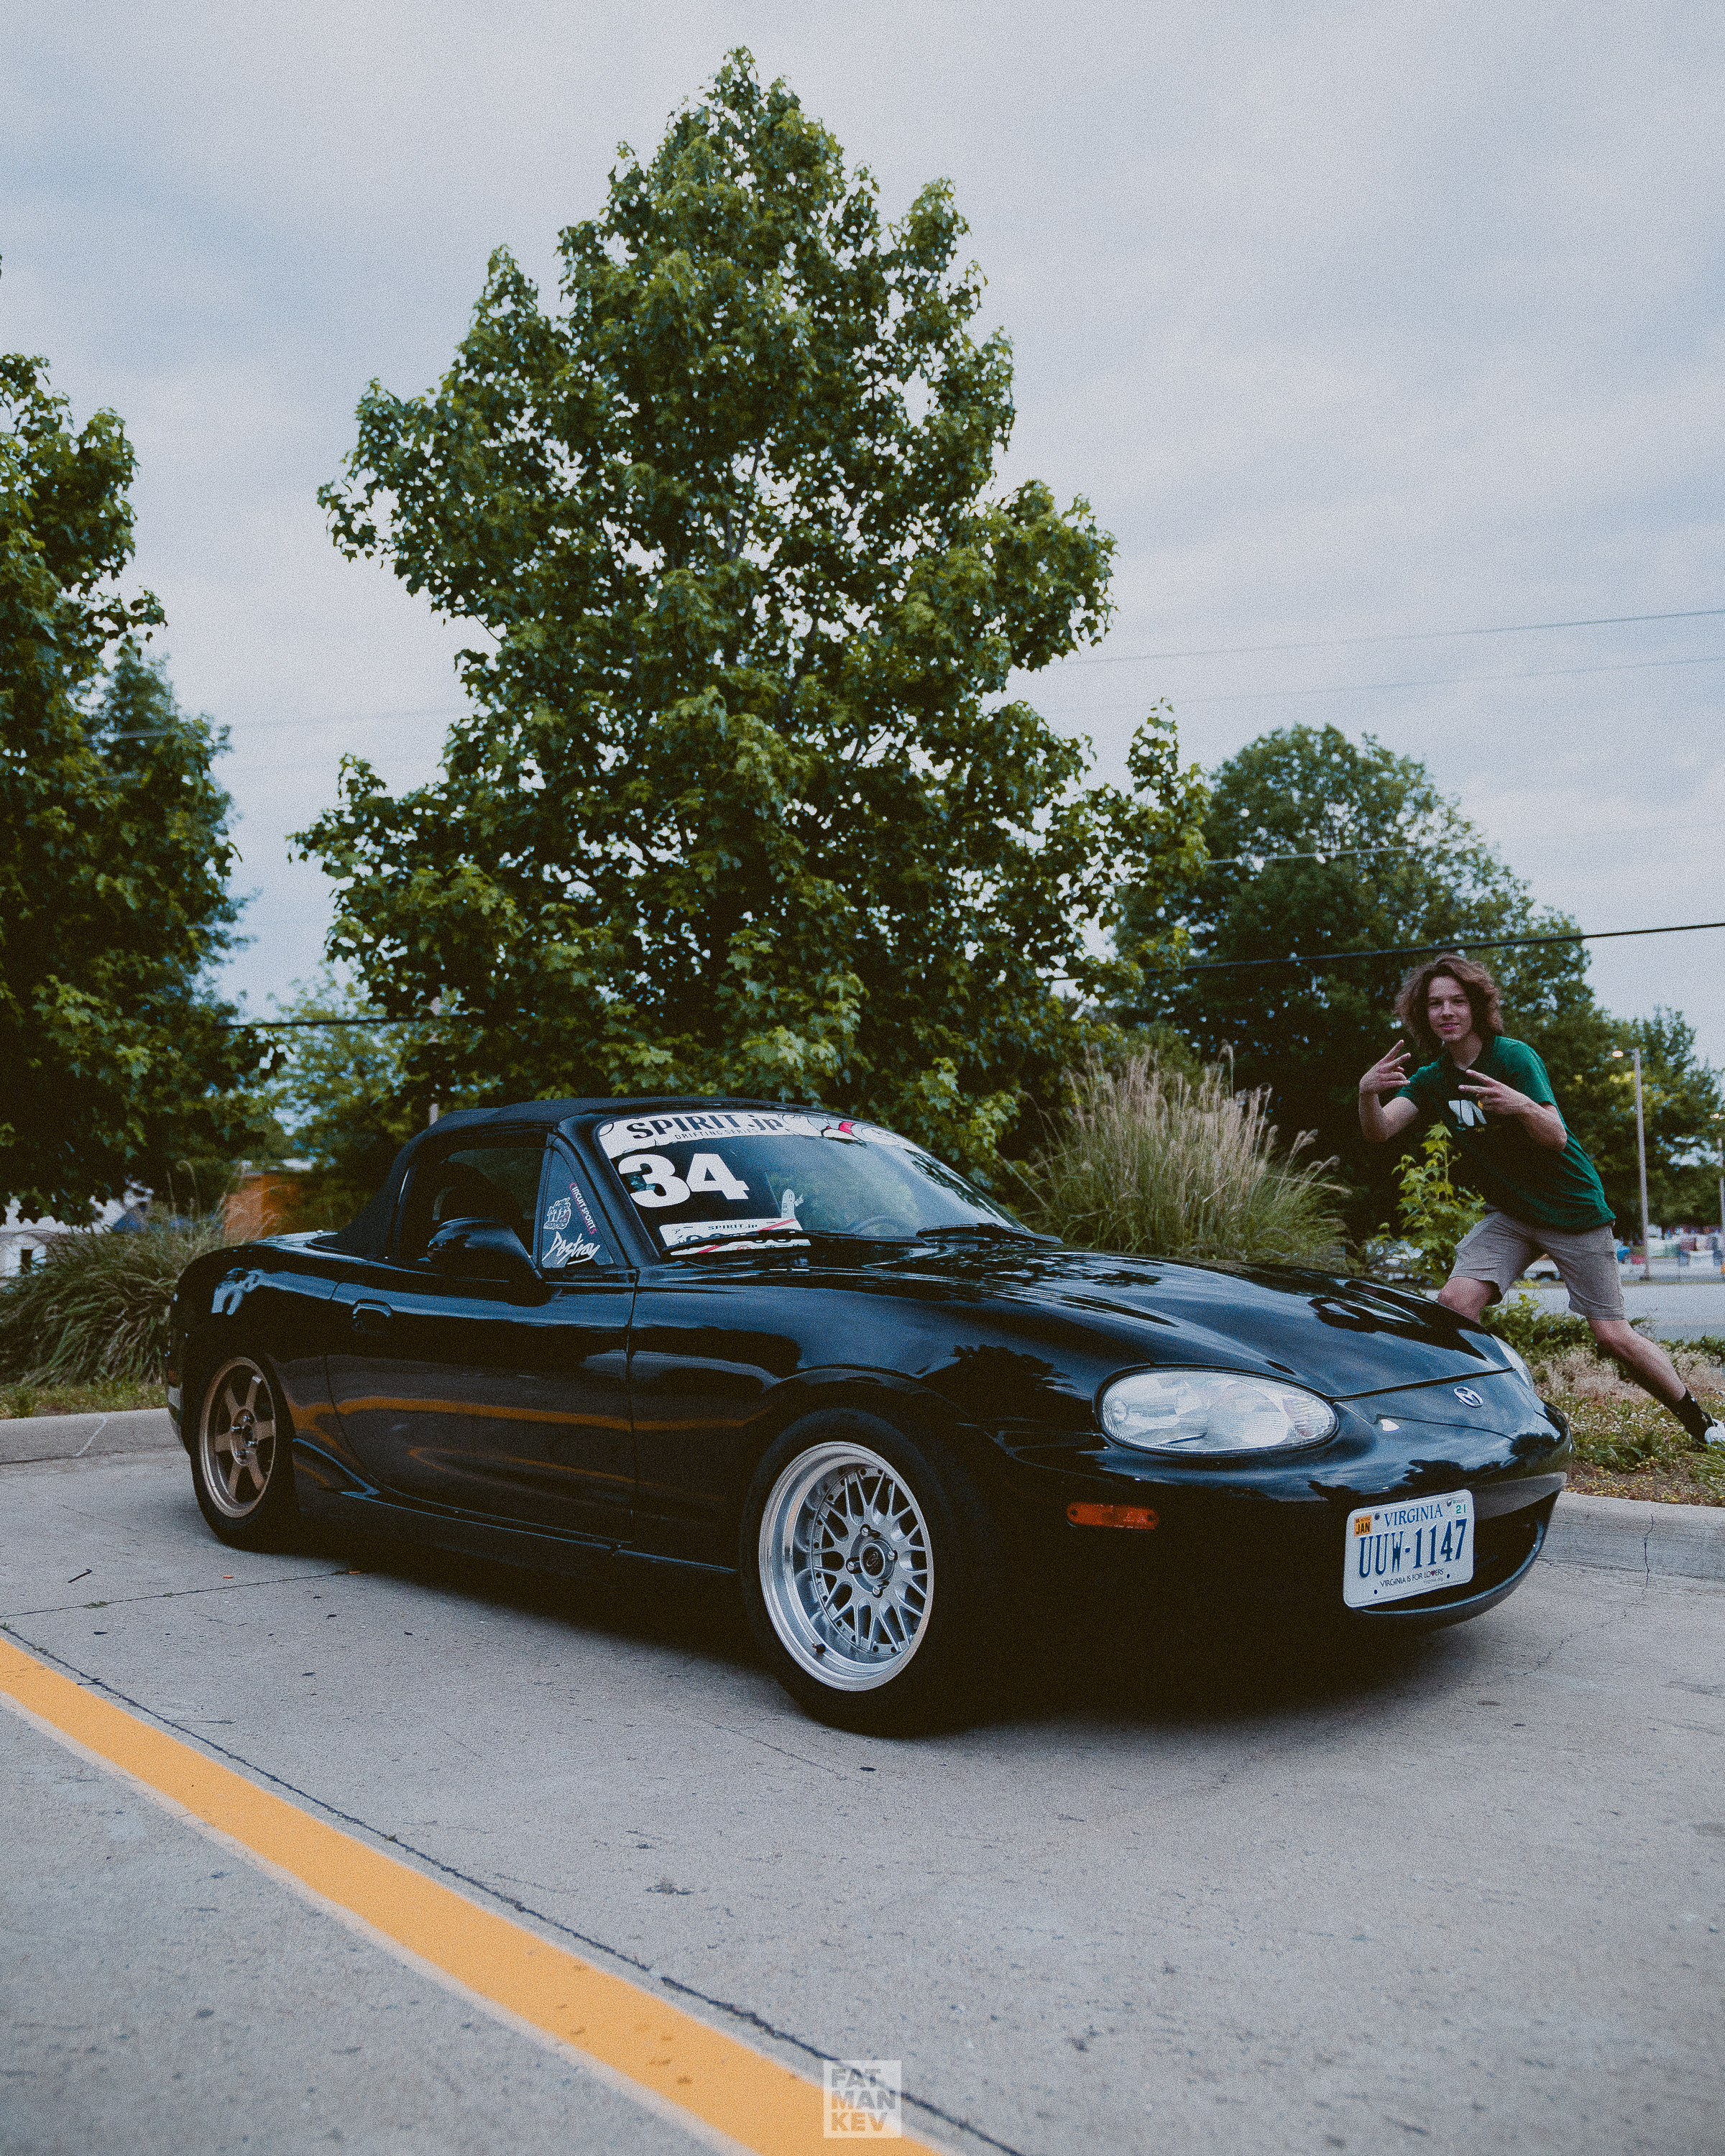 Jack drove all the way out from Newport News to come hang! Check out his new Vlog series on YouTube. He tells you how he got into drifting and what he's learned along the way that will help YOU get started!   Search Jack Rancorn on YouTube.   This is how you Miata, everyone. 100% stock and the only thing that gets replaced are the tires. Perfect reliable seat time car for practicing and dialing in your driving skill.